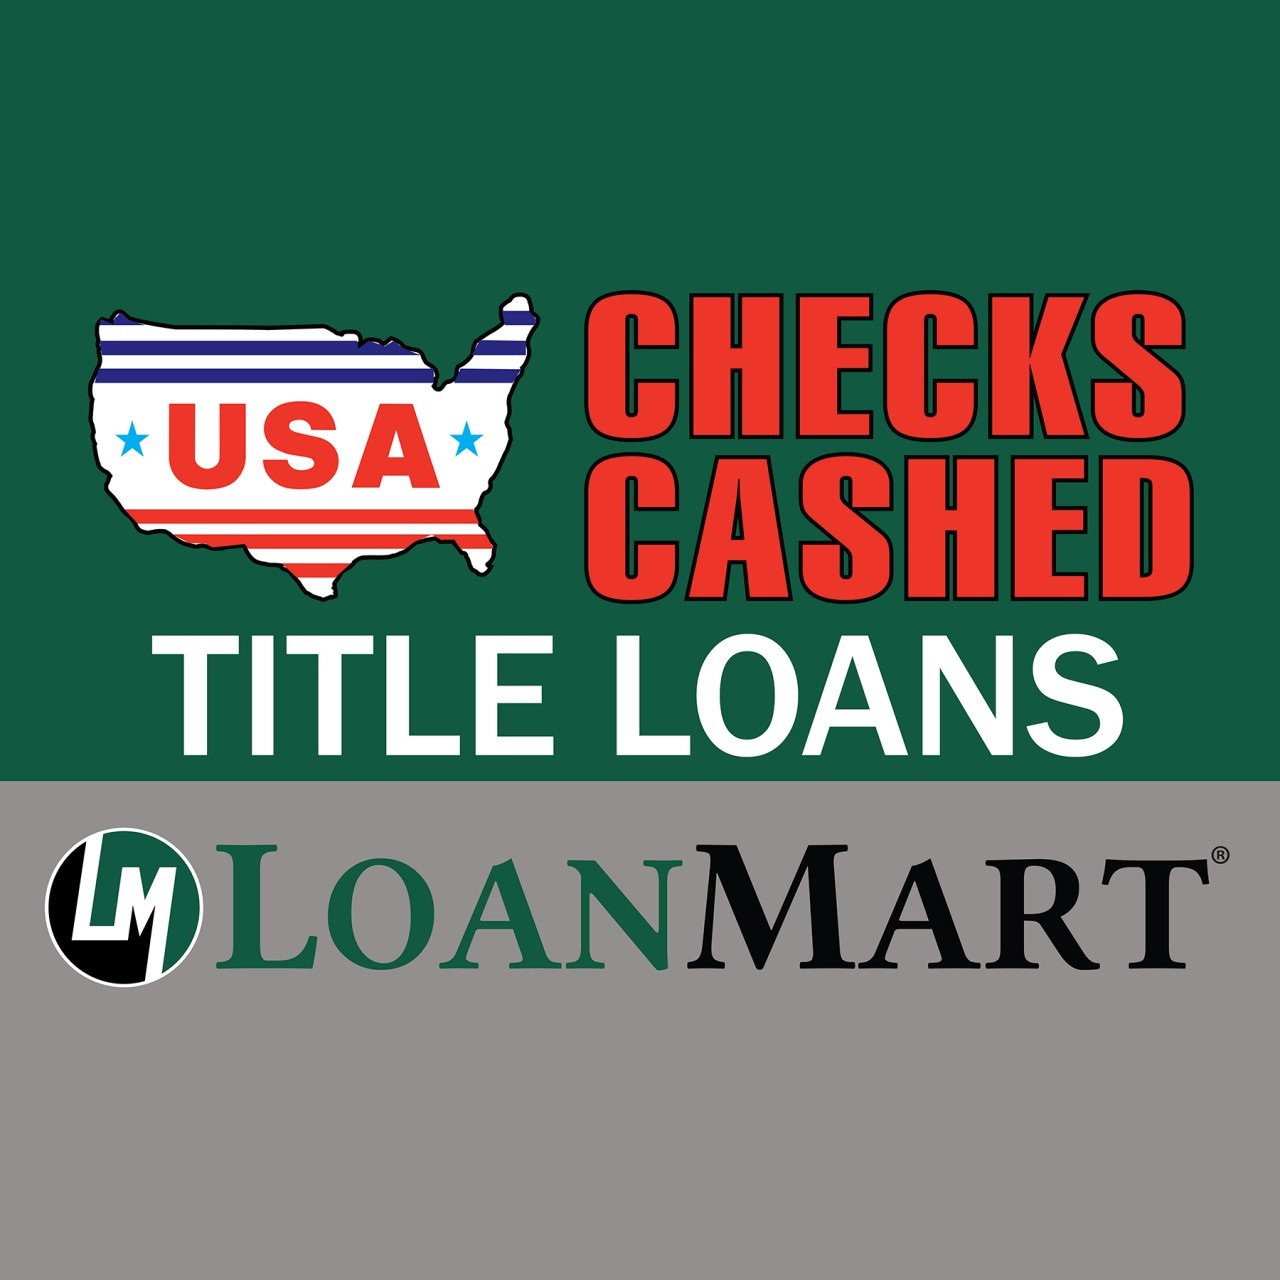 USA Title Loan Services – Loanmart San Diego